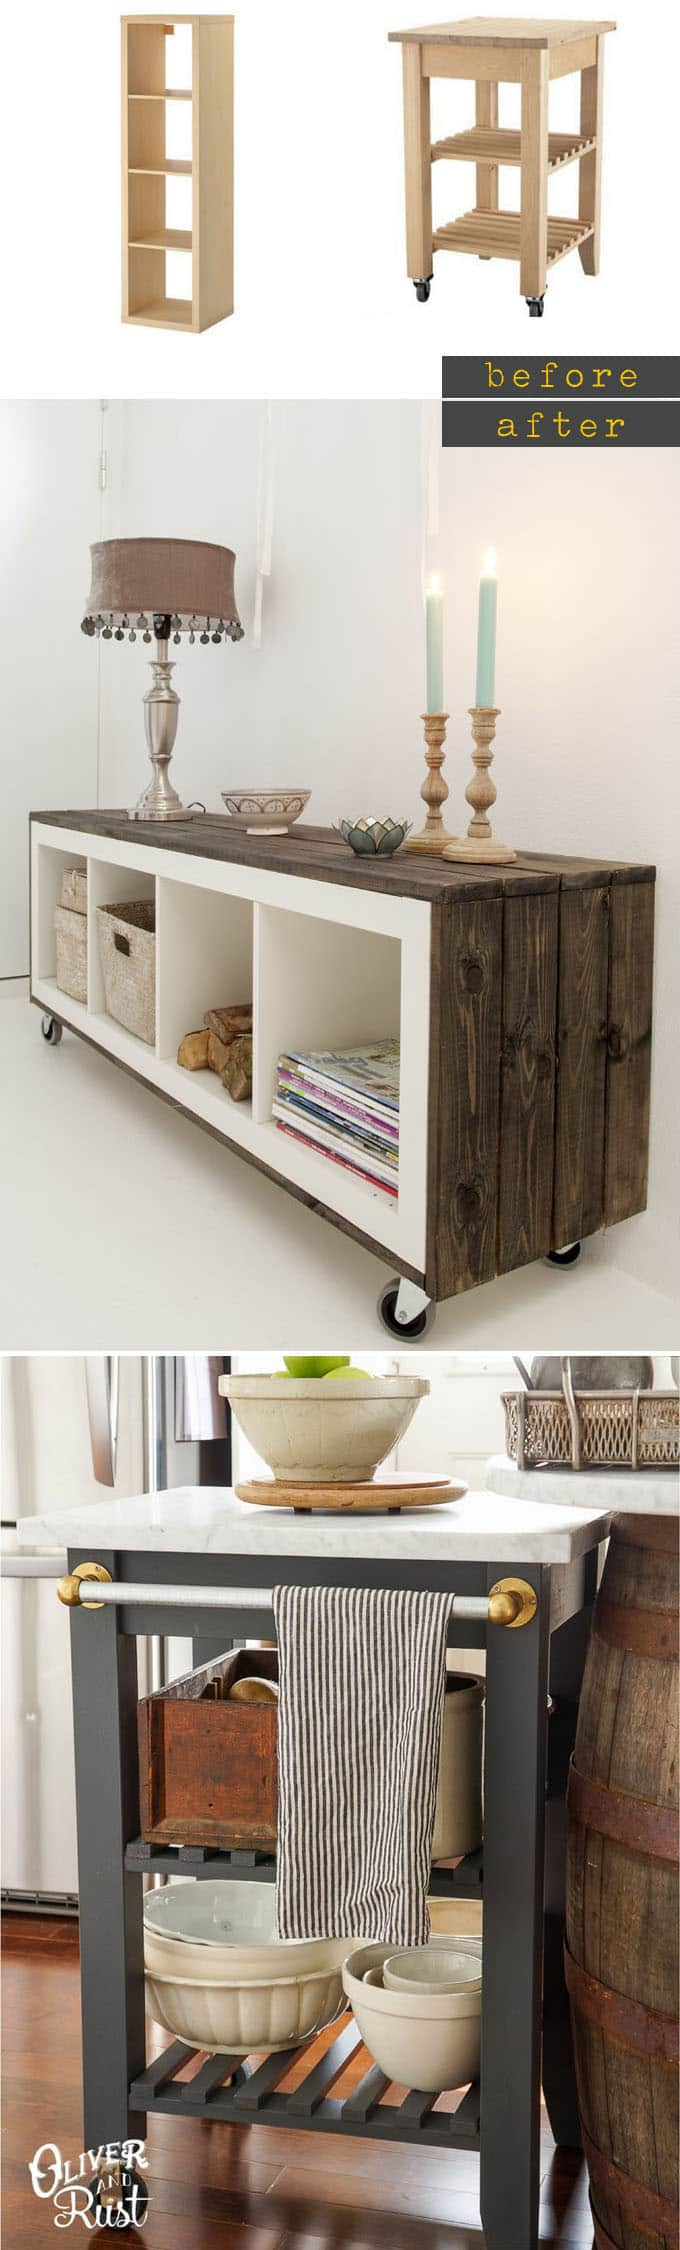 Vintage Küche Ikea Easy Custom Furniture With 18 Amazing Ikea Hacks A Piece